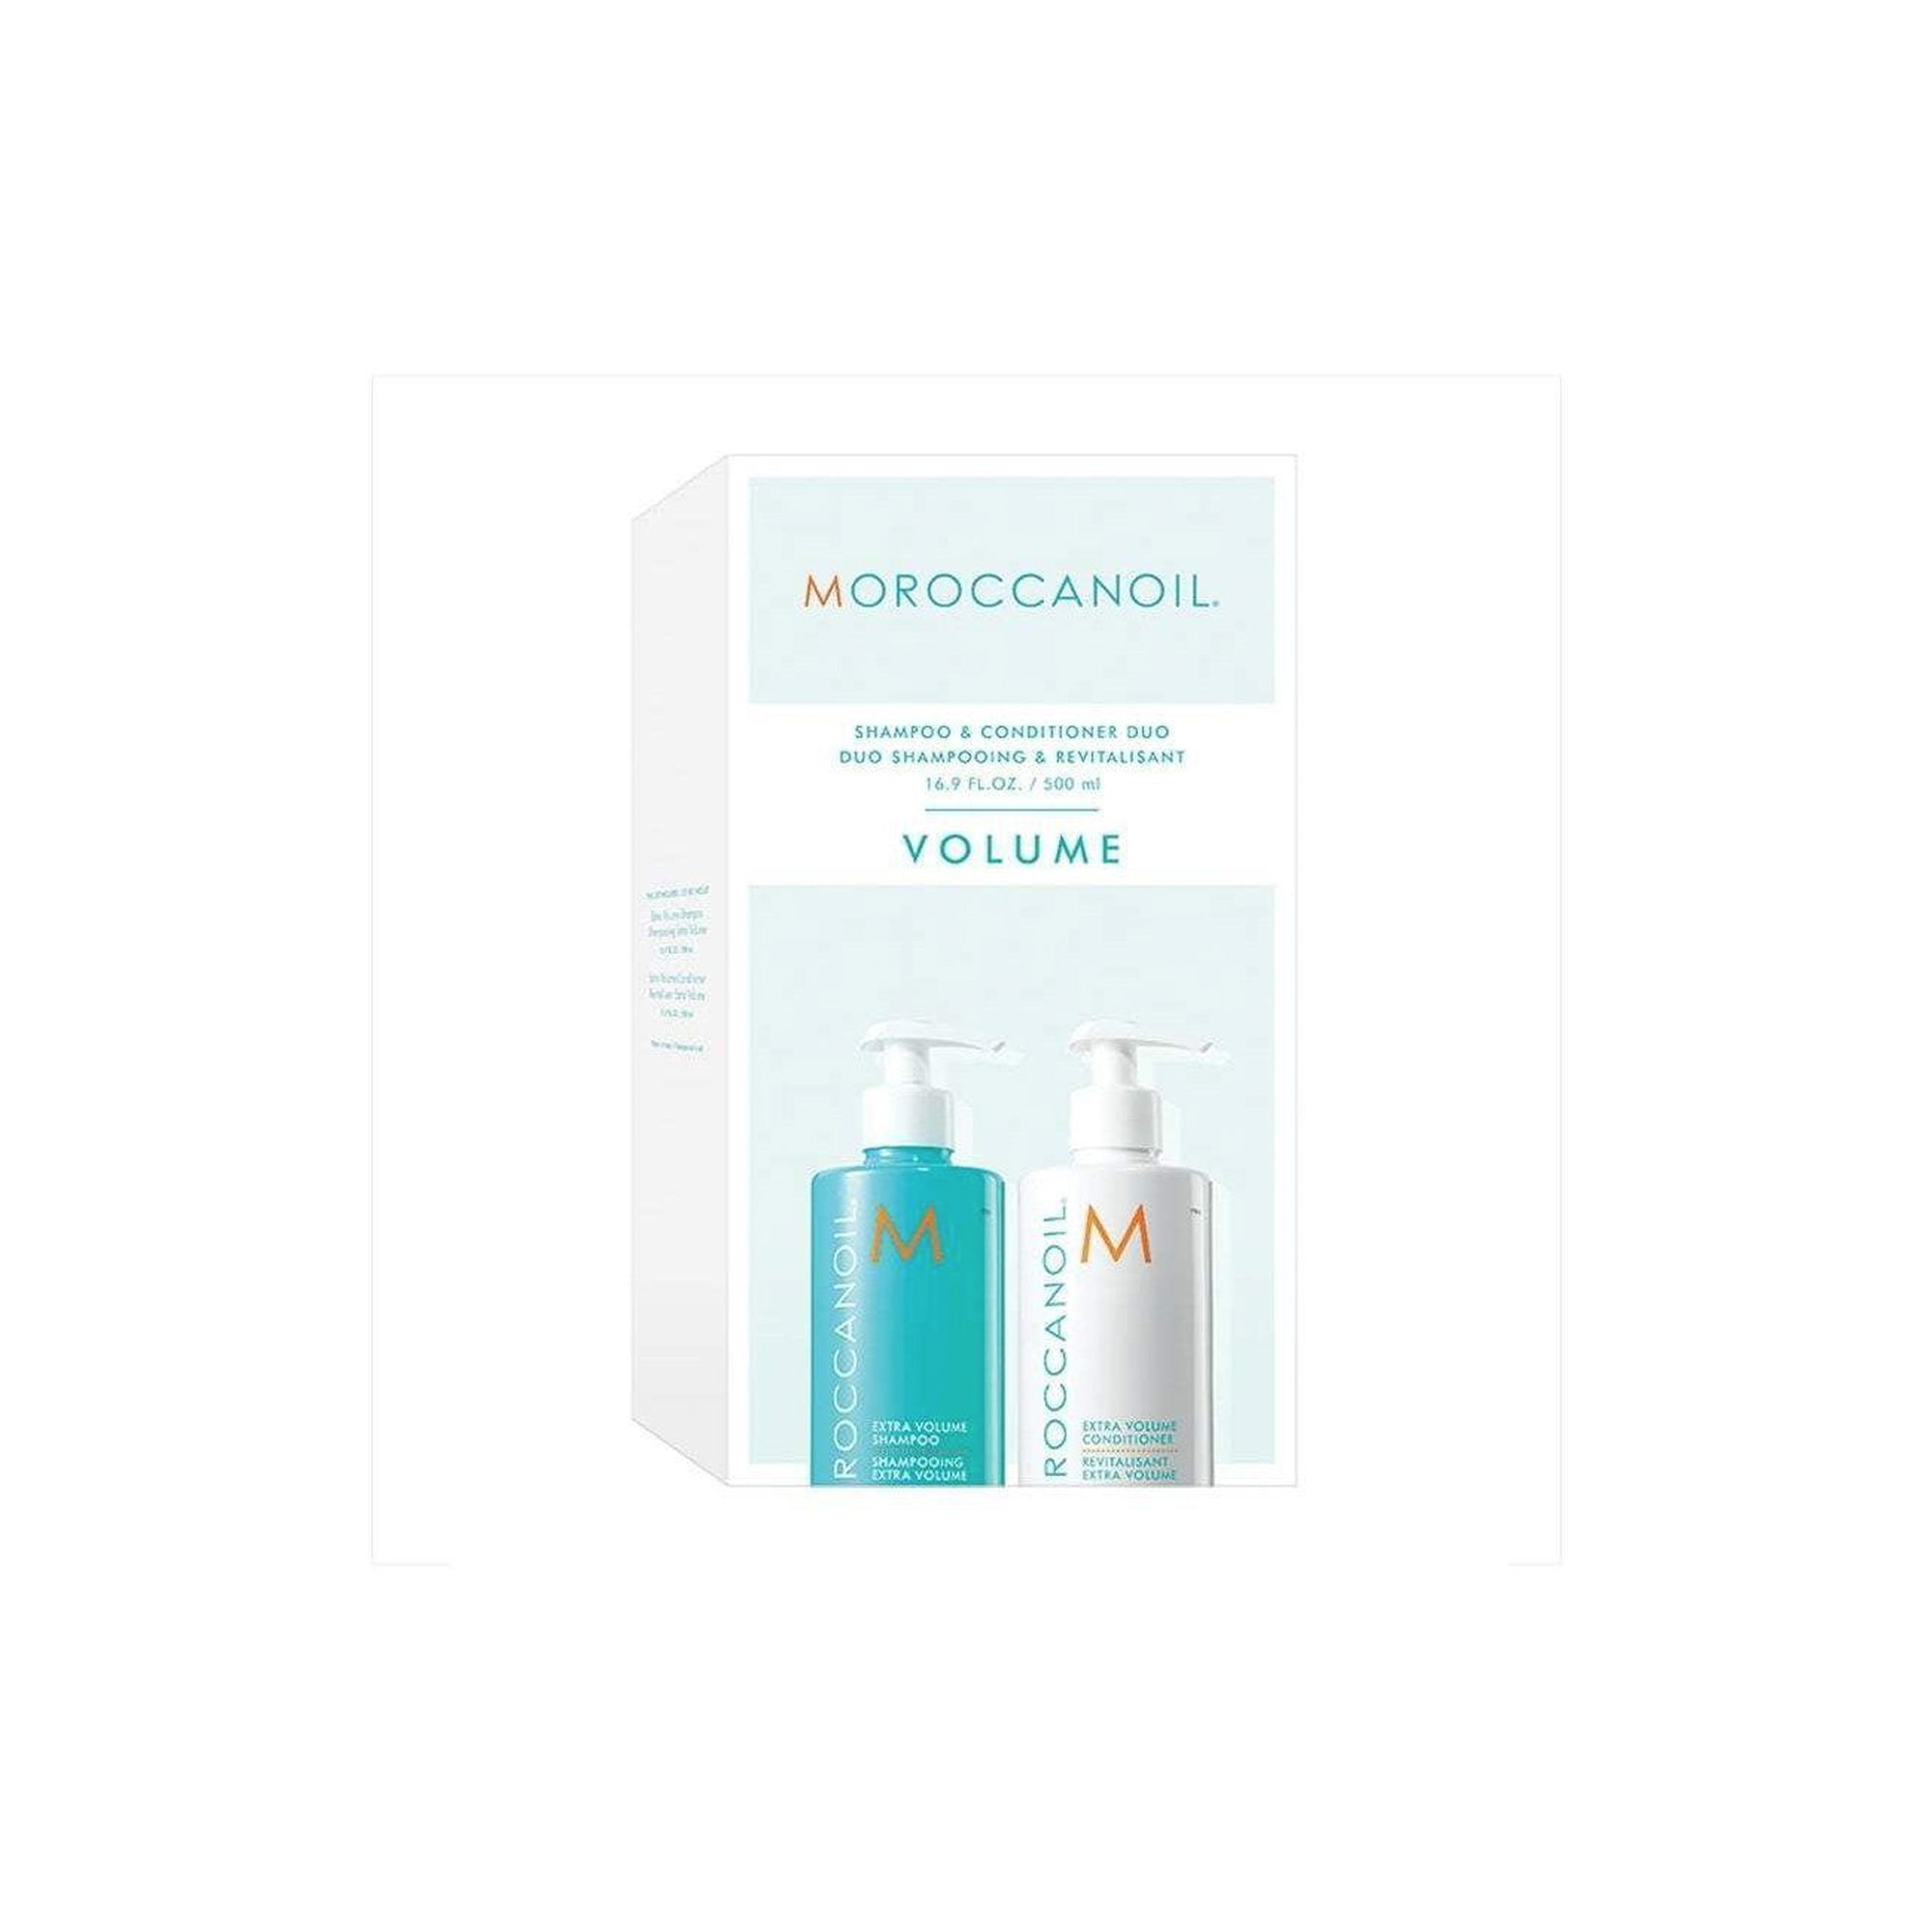 Moroccanoil Extra Volume Bundle 500ml